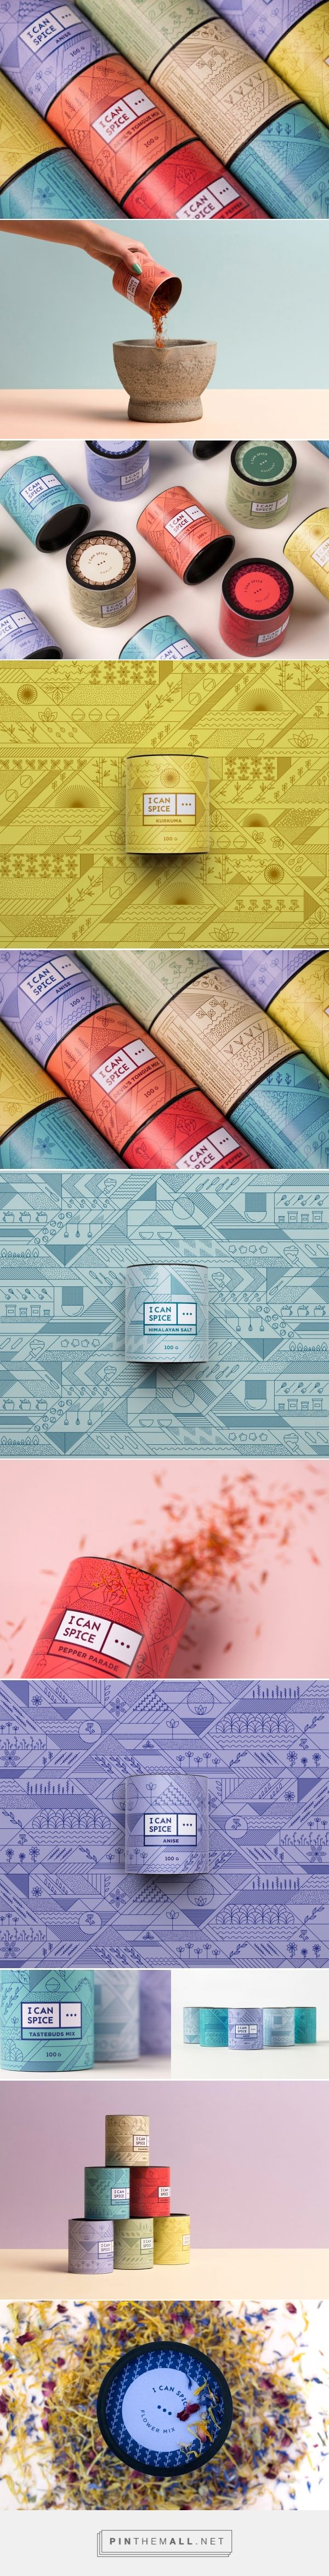 I Can Spice packaging design by DekoRatio Branding & Design Studio - http://www.packagingoftheworld.com/2017/09/i-can-spice.html